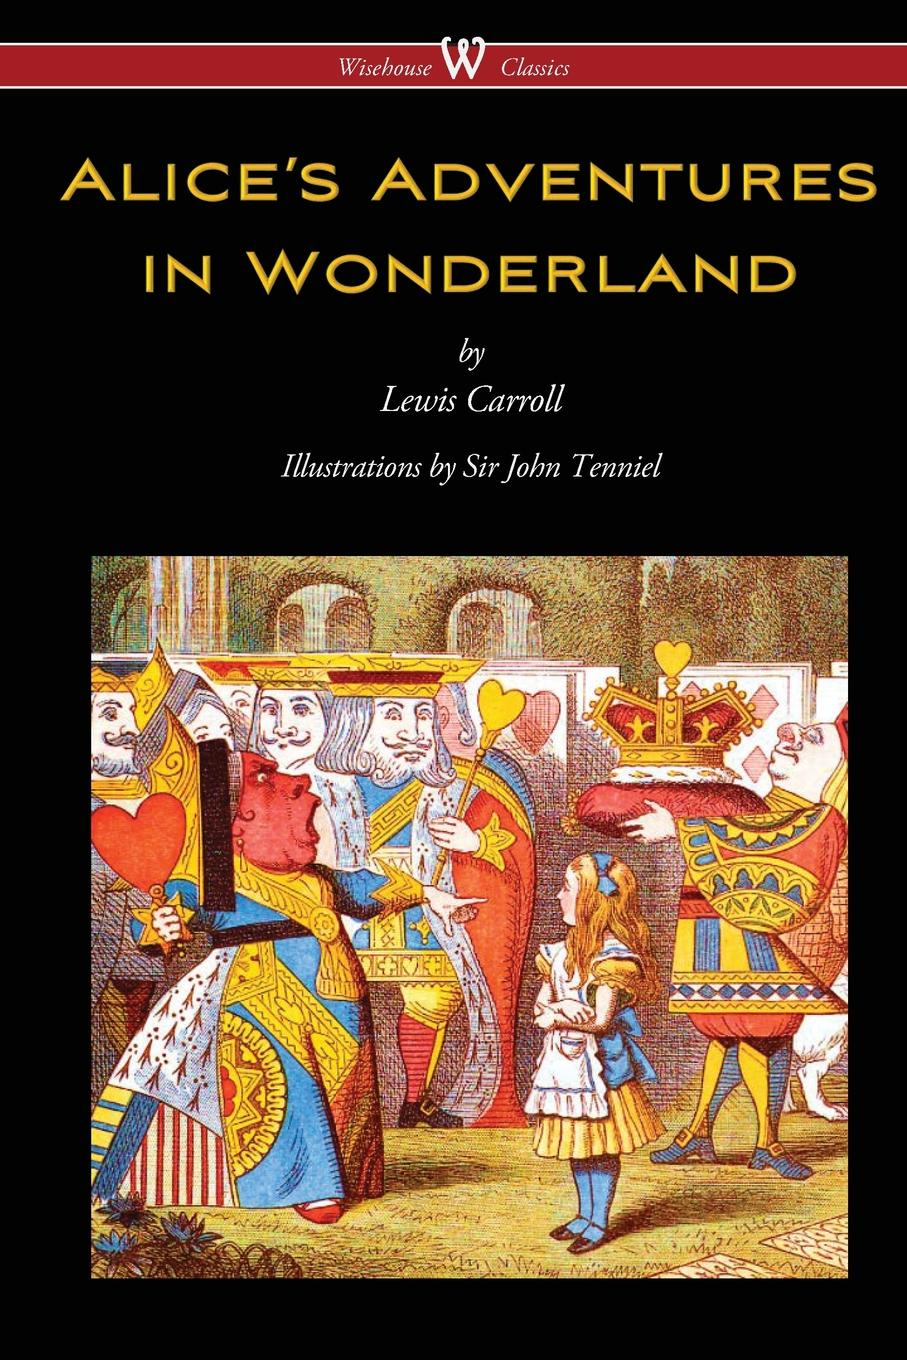 Lewis Carroll Alice.s Adventures in Wonderland (Wisehouse Classics - Original 1865 Edition with the Complete Illustrations by Sir John Tenniel) stephen colvin a brief history of ancient greek